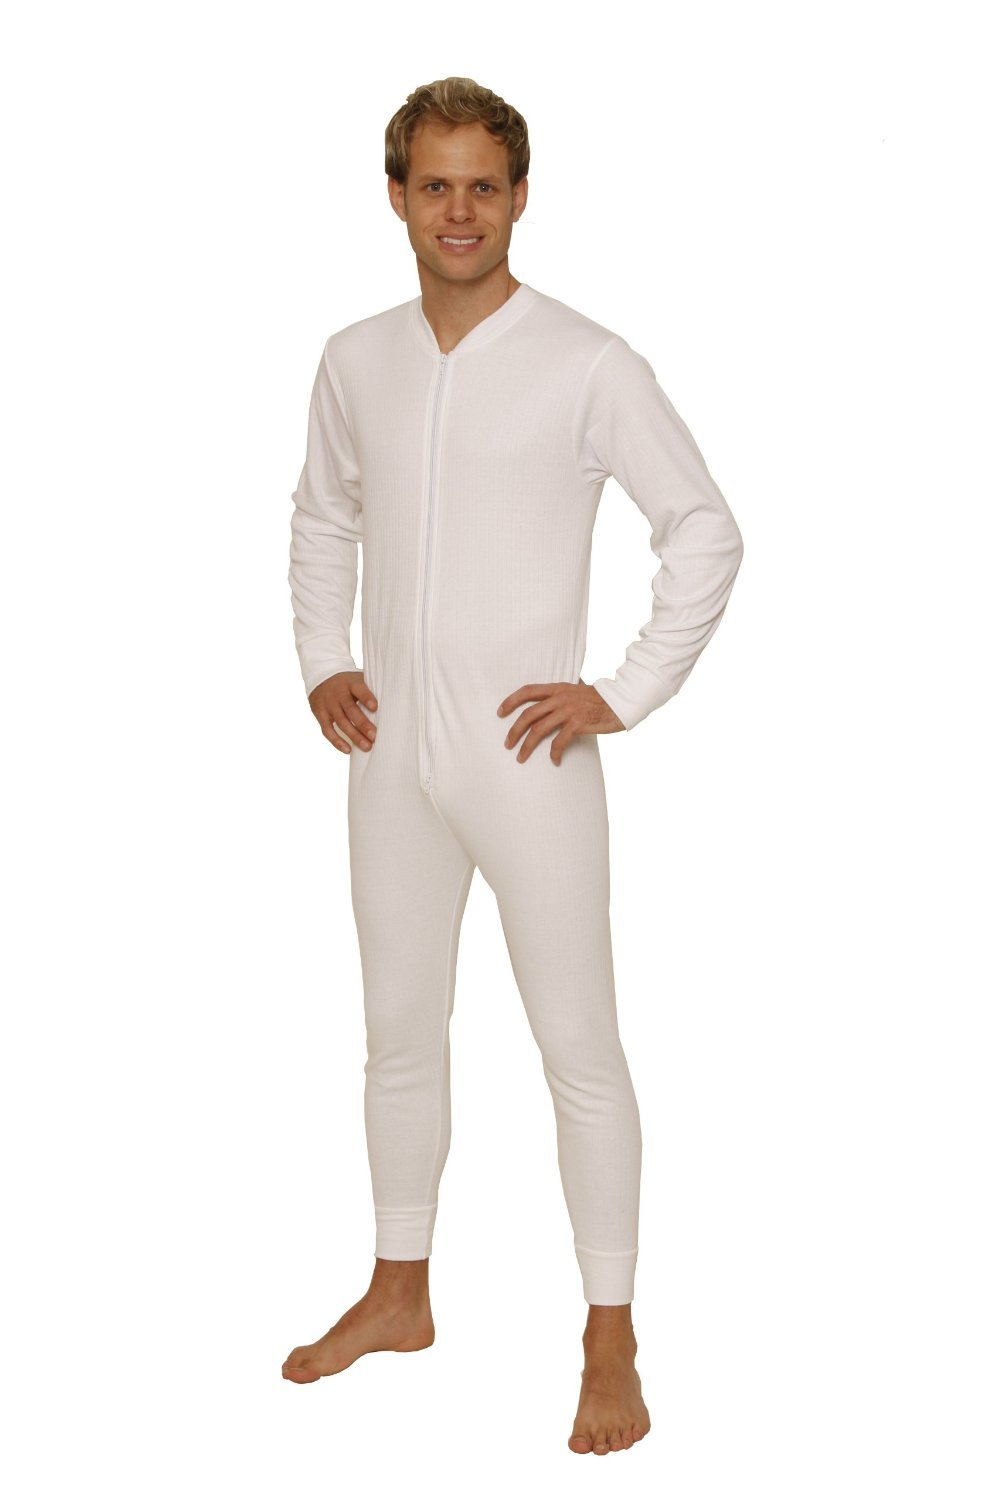 Octave Mens Thermal Underwear Union Suit/Thermal Body Suit (Large, White) by Octave